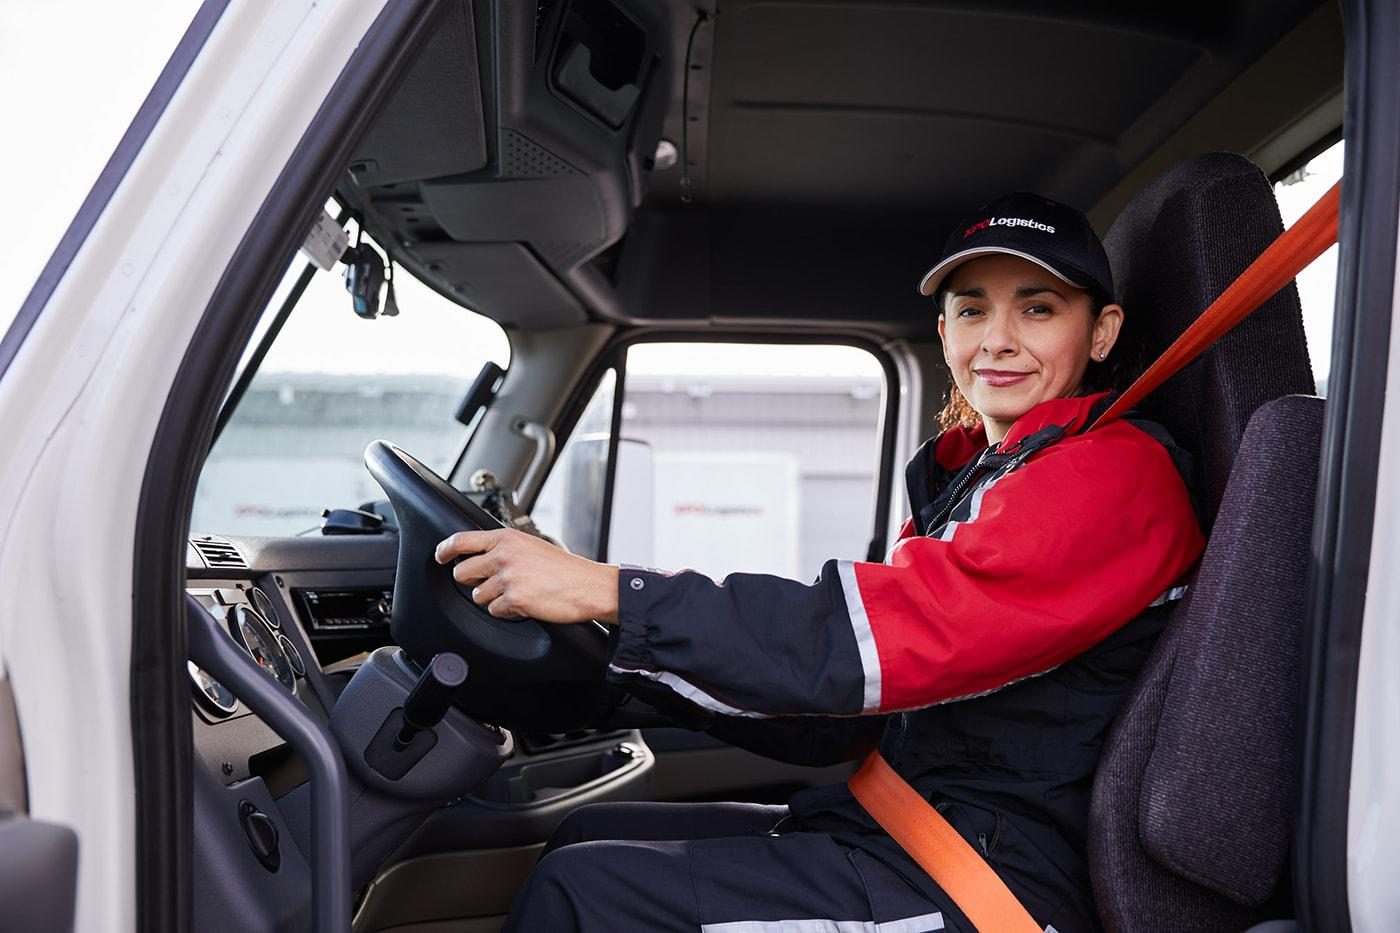 XPO female driver inside cabin of truck